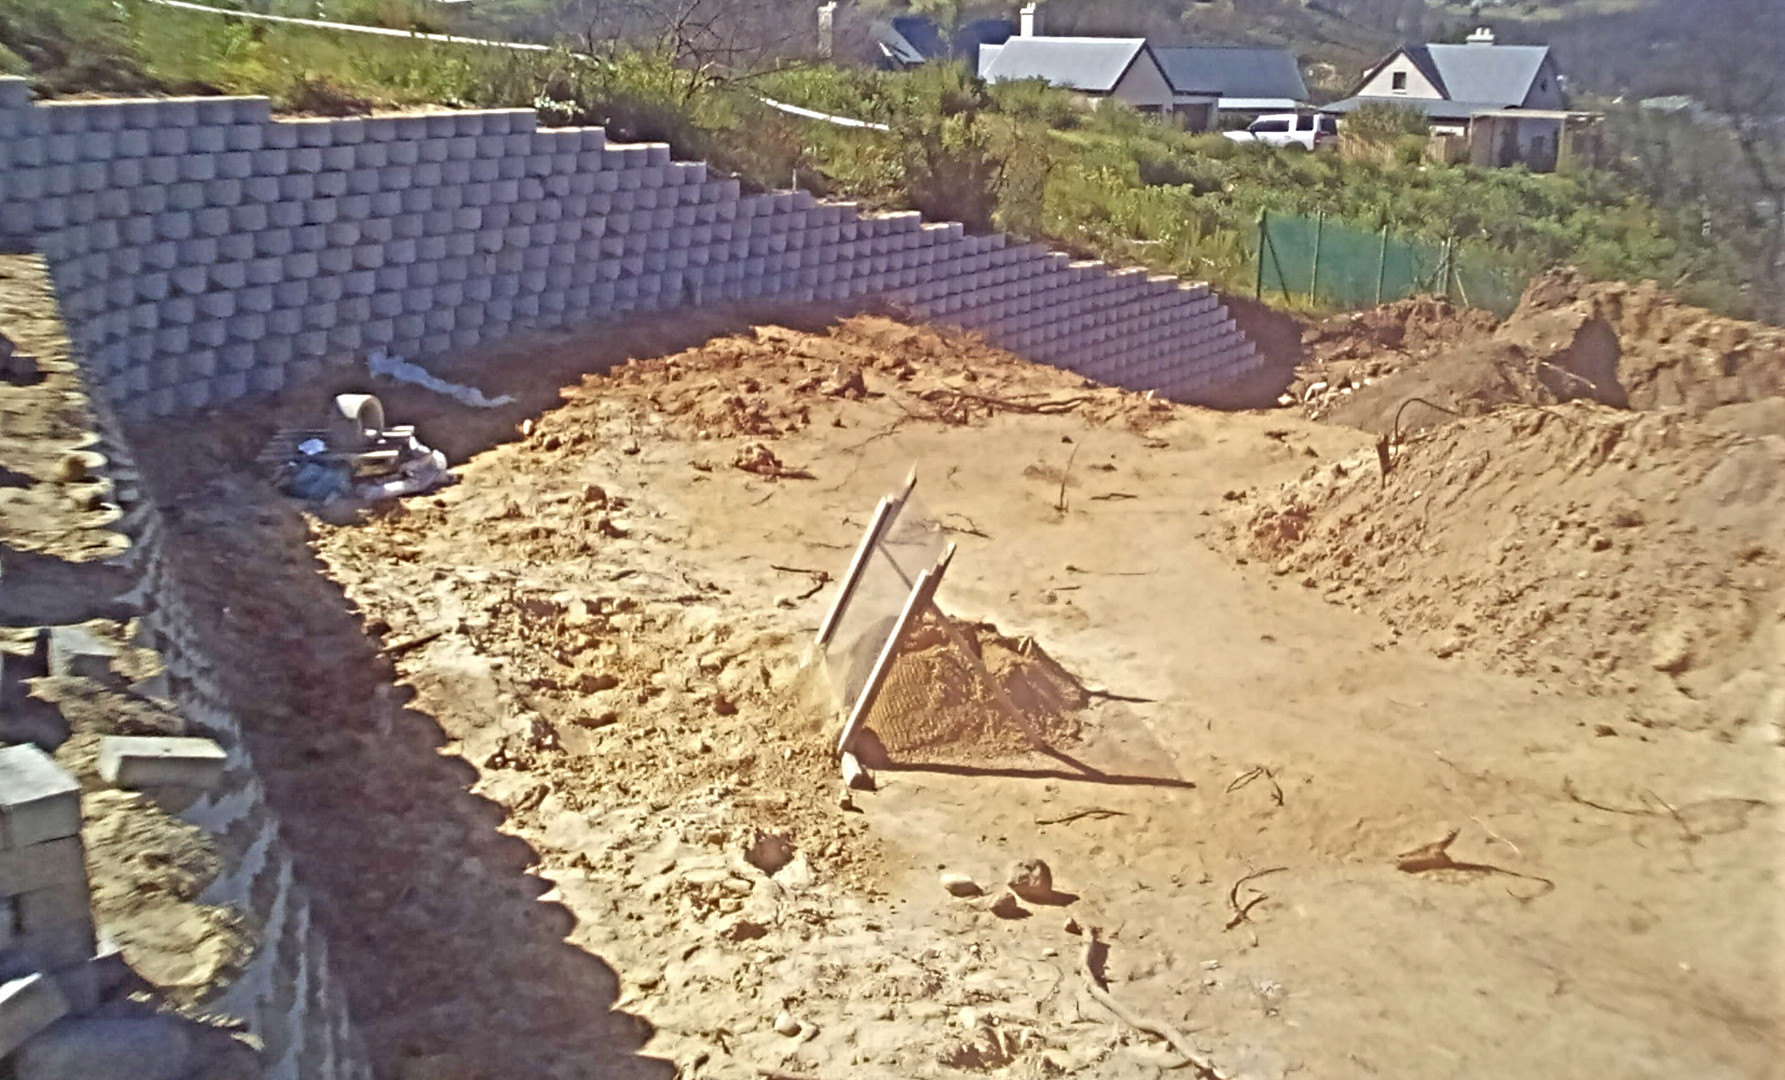 Retaining Wall down side of plot